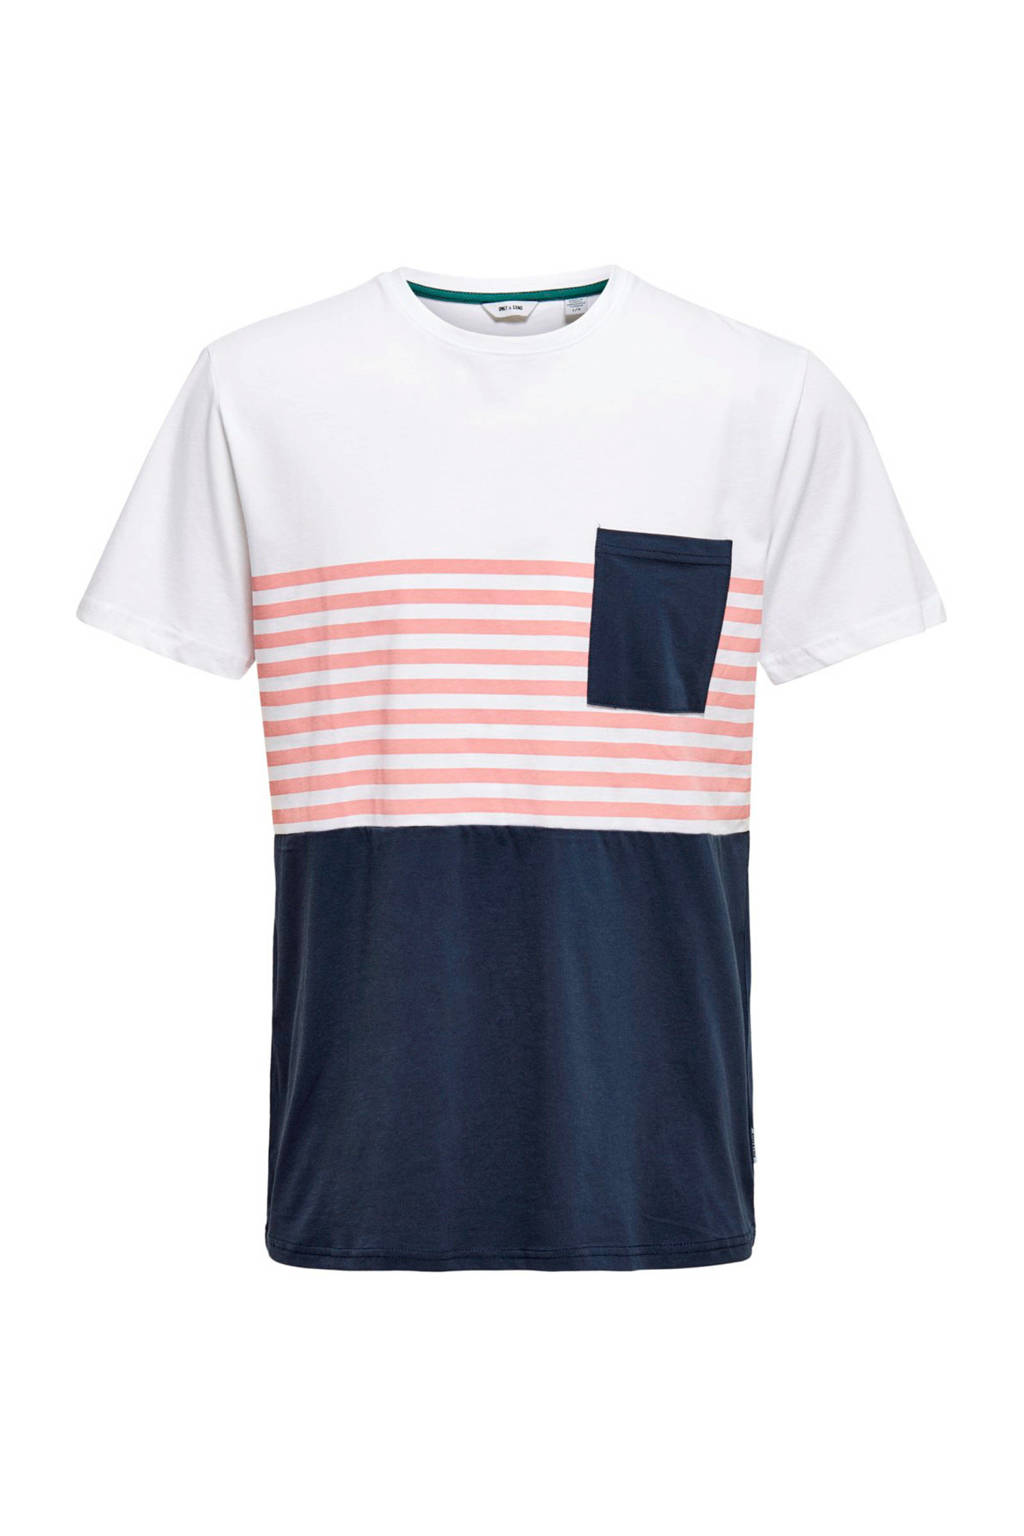 ONLY & SONS T-shirt met strepen donkerblauw/wit/roze, Donkerblauw/wit/roze